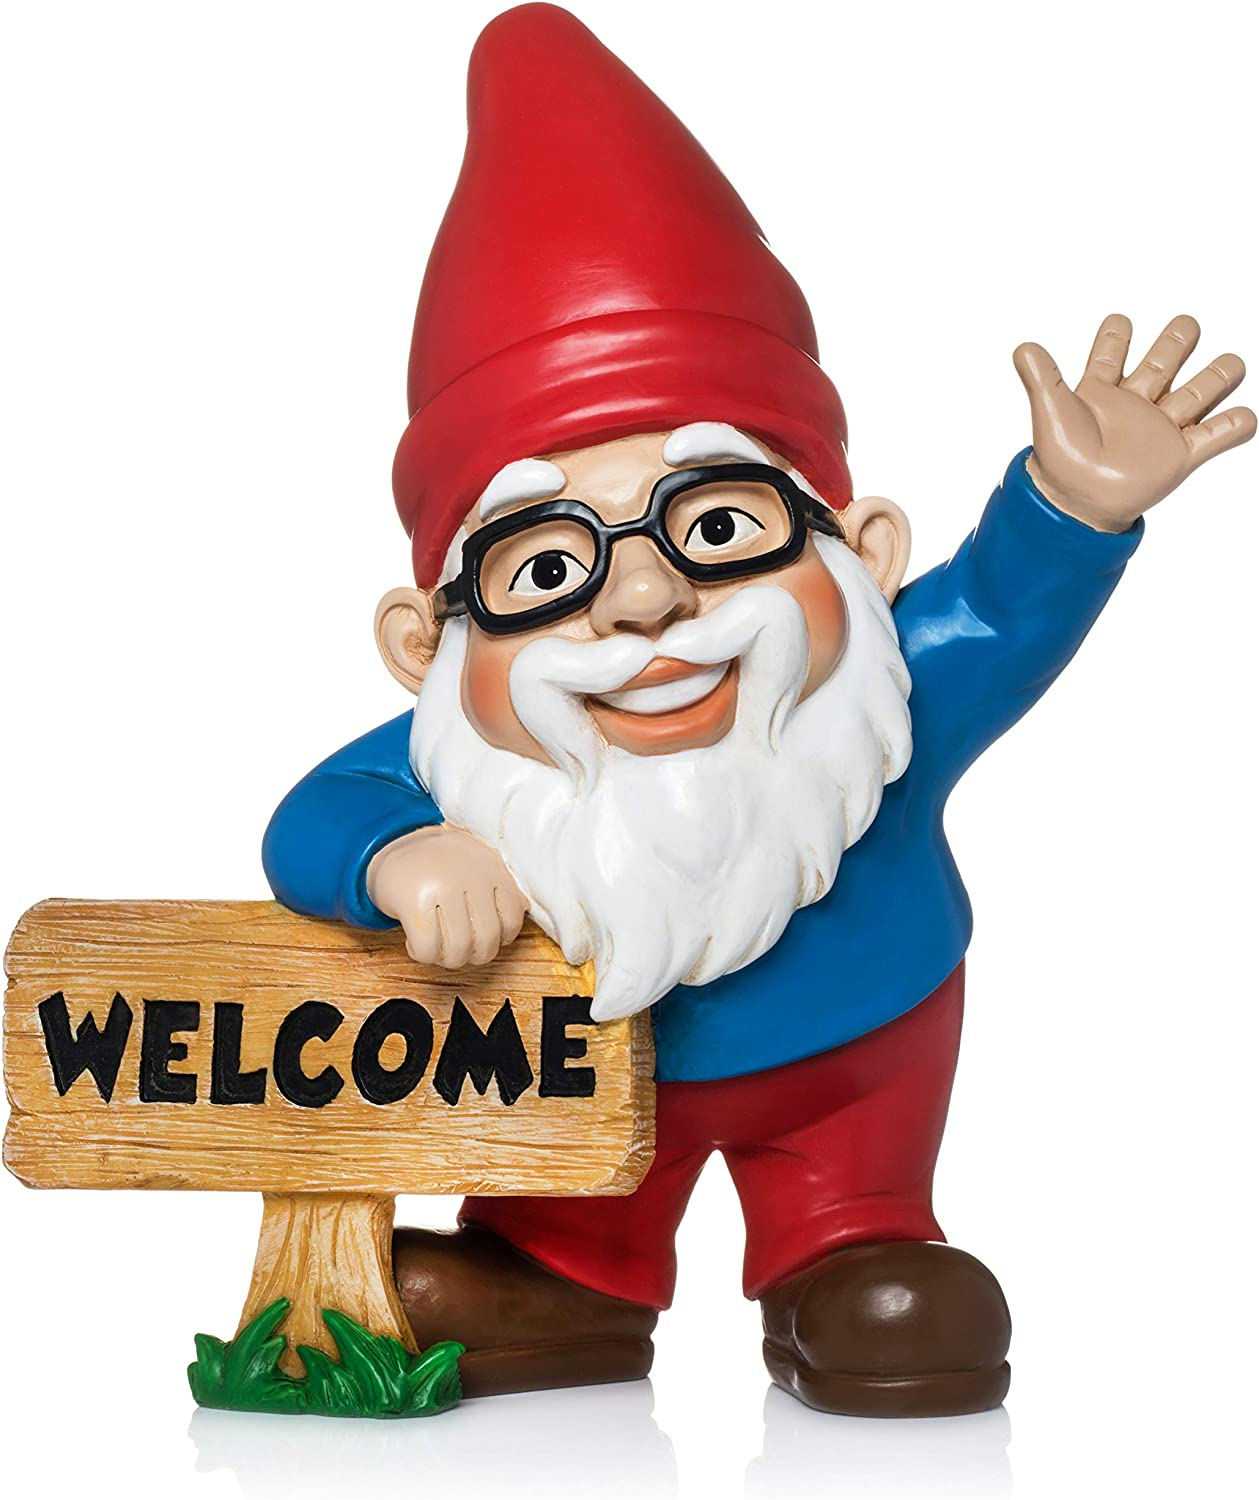 Twig & Flower Wilbur The Friendly Welcome Gnome